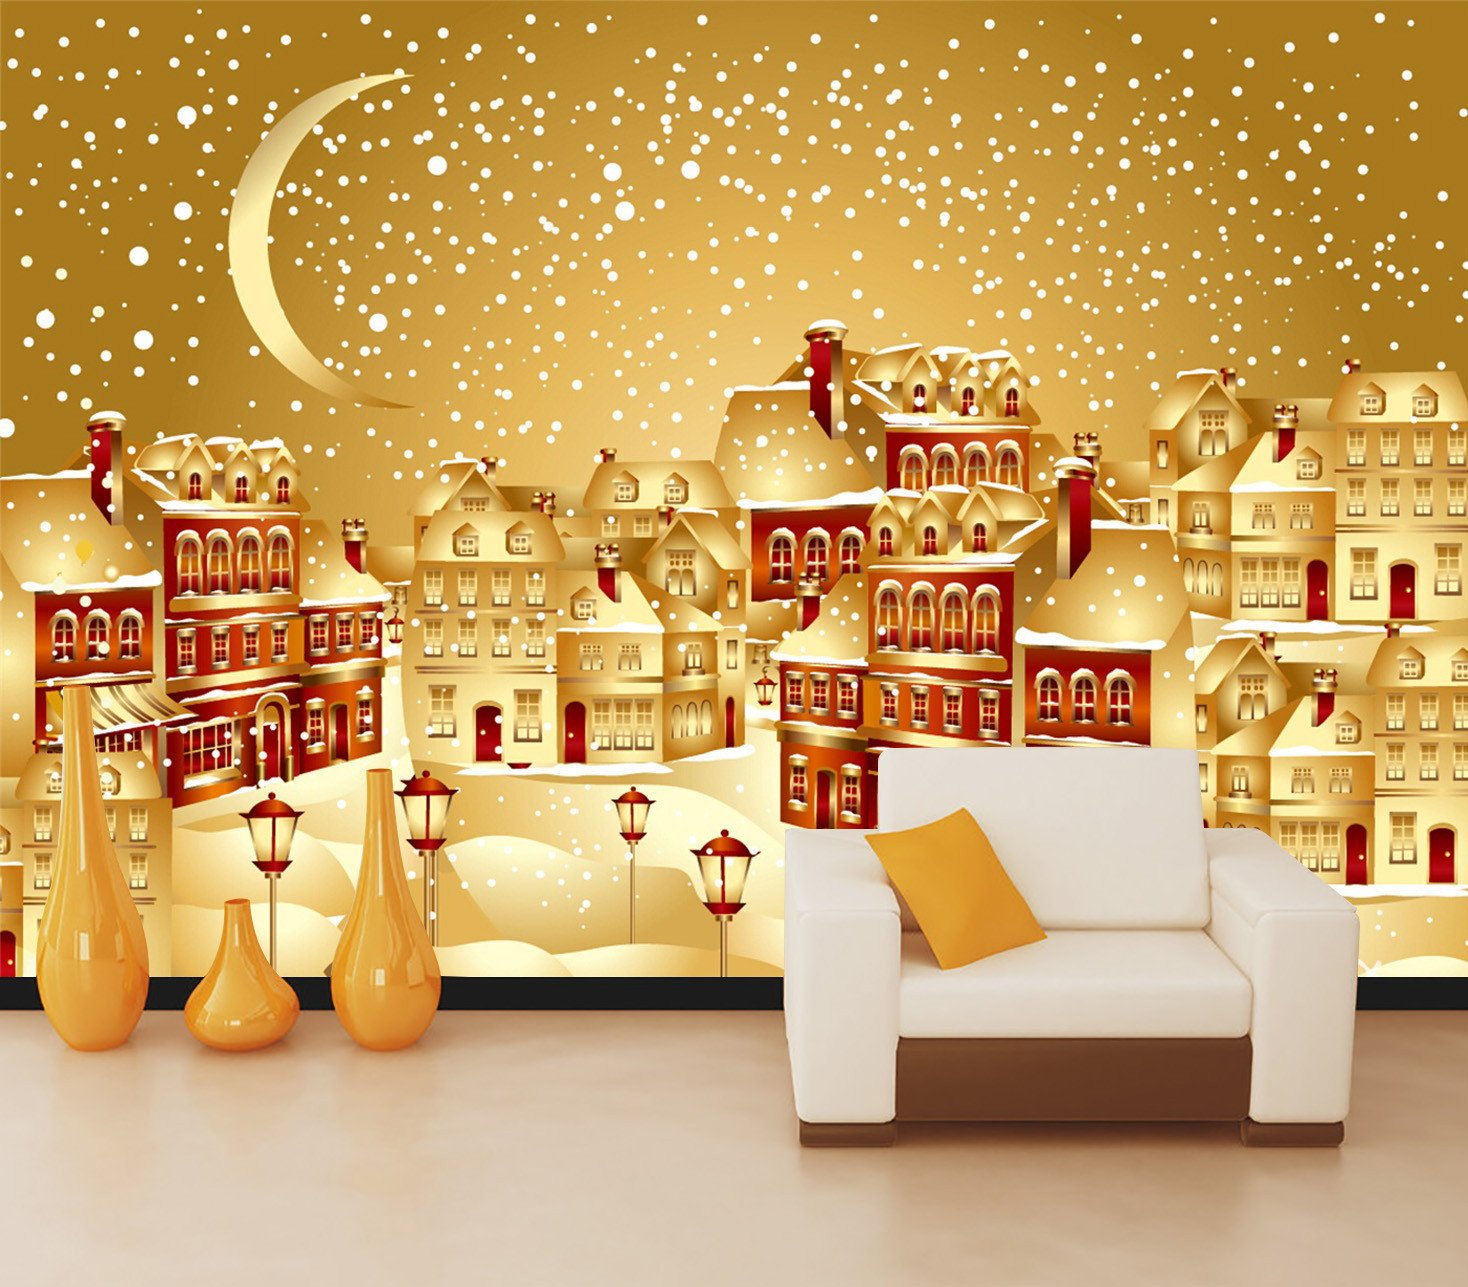 3D Christmas Moon And Star 63 Wallpaper AJ Wallpaper